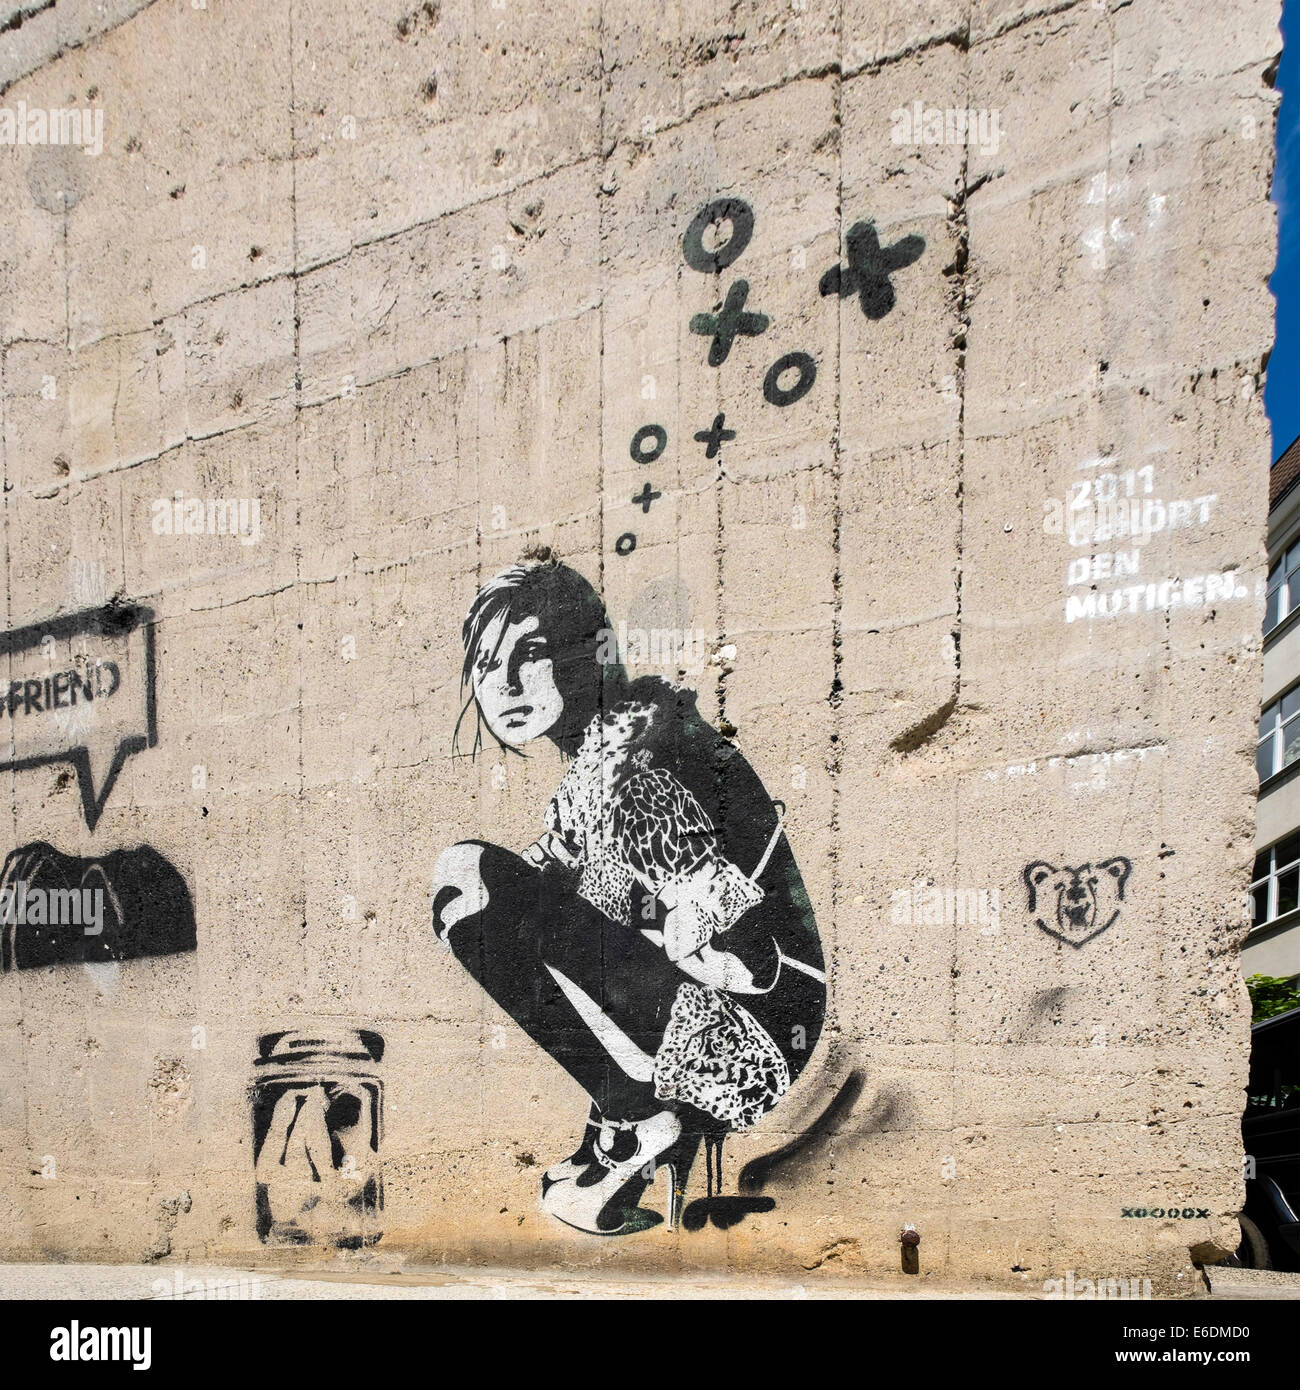 Stenciled street art by prominent artist xoooox in Berlin Germany - Stock Image